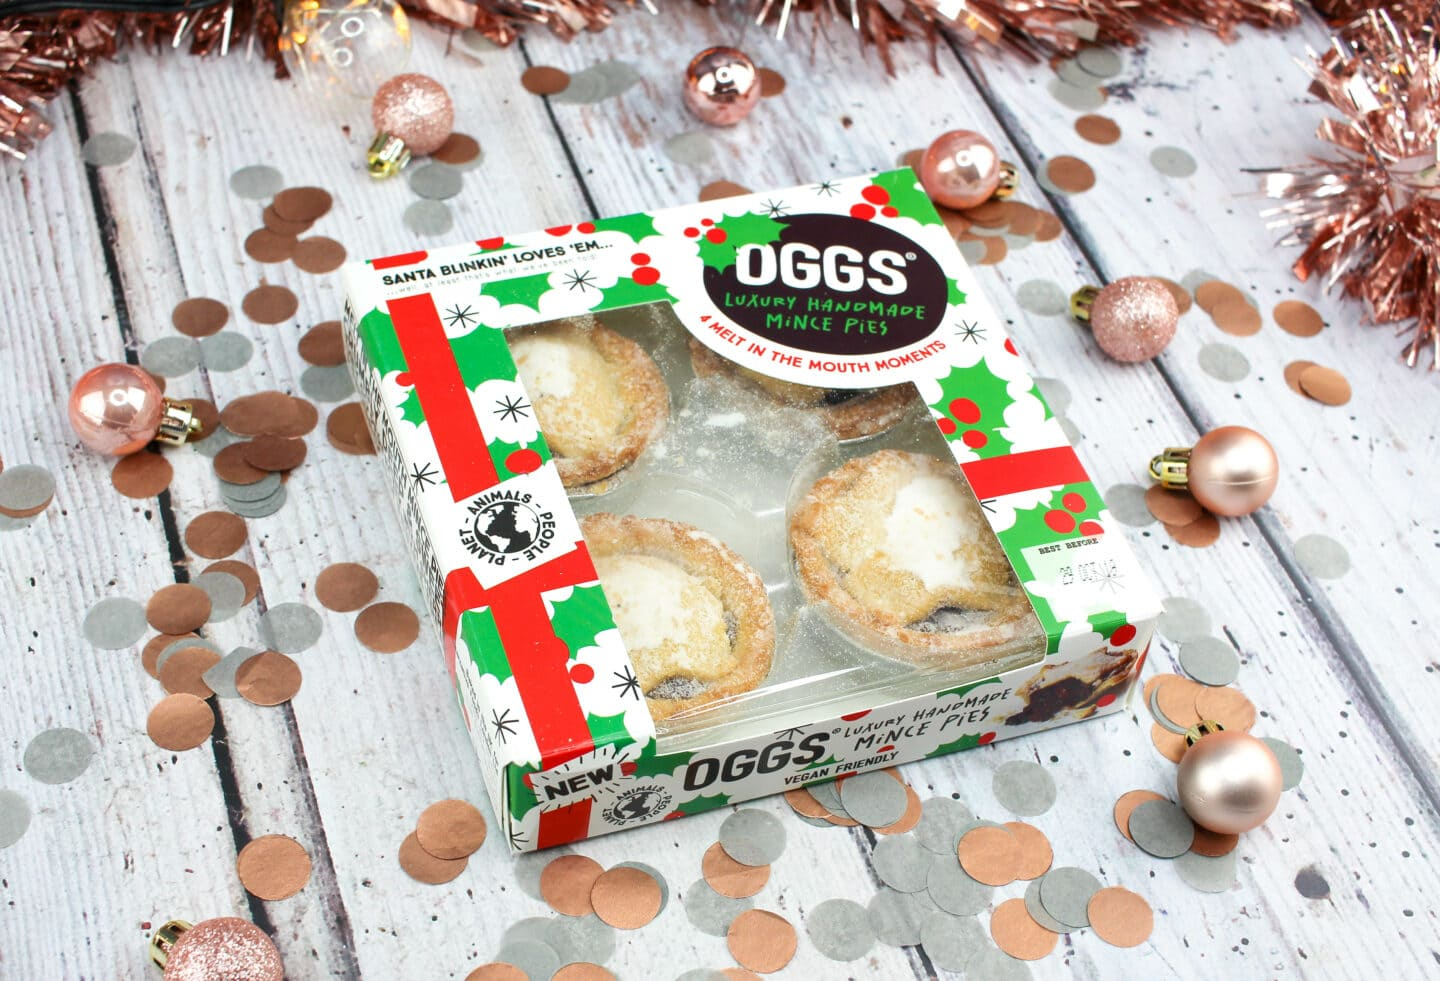 OGGS Mince Pies